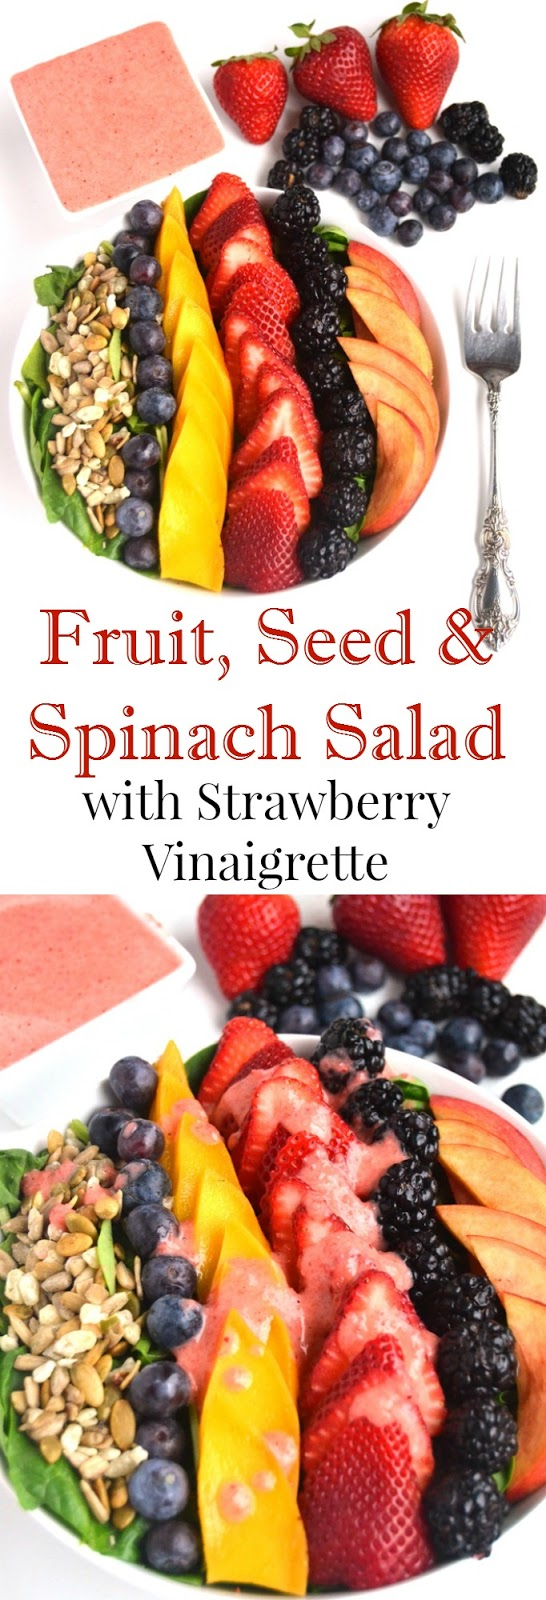 Fruit, Seed and Spinach Salad with Strawberry Vinaigrette features a fresh salad with strawberries,  blueberries, blackberries, mango, dried fruit and seeds all topped with a homemade fruit vinaigrette. www.nutritionistreviews.com